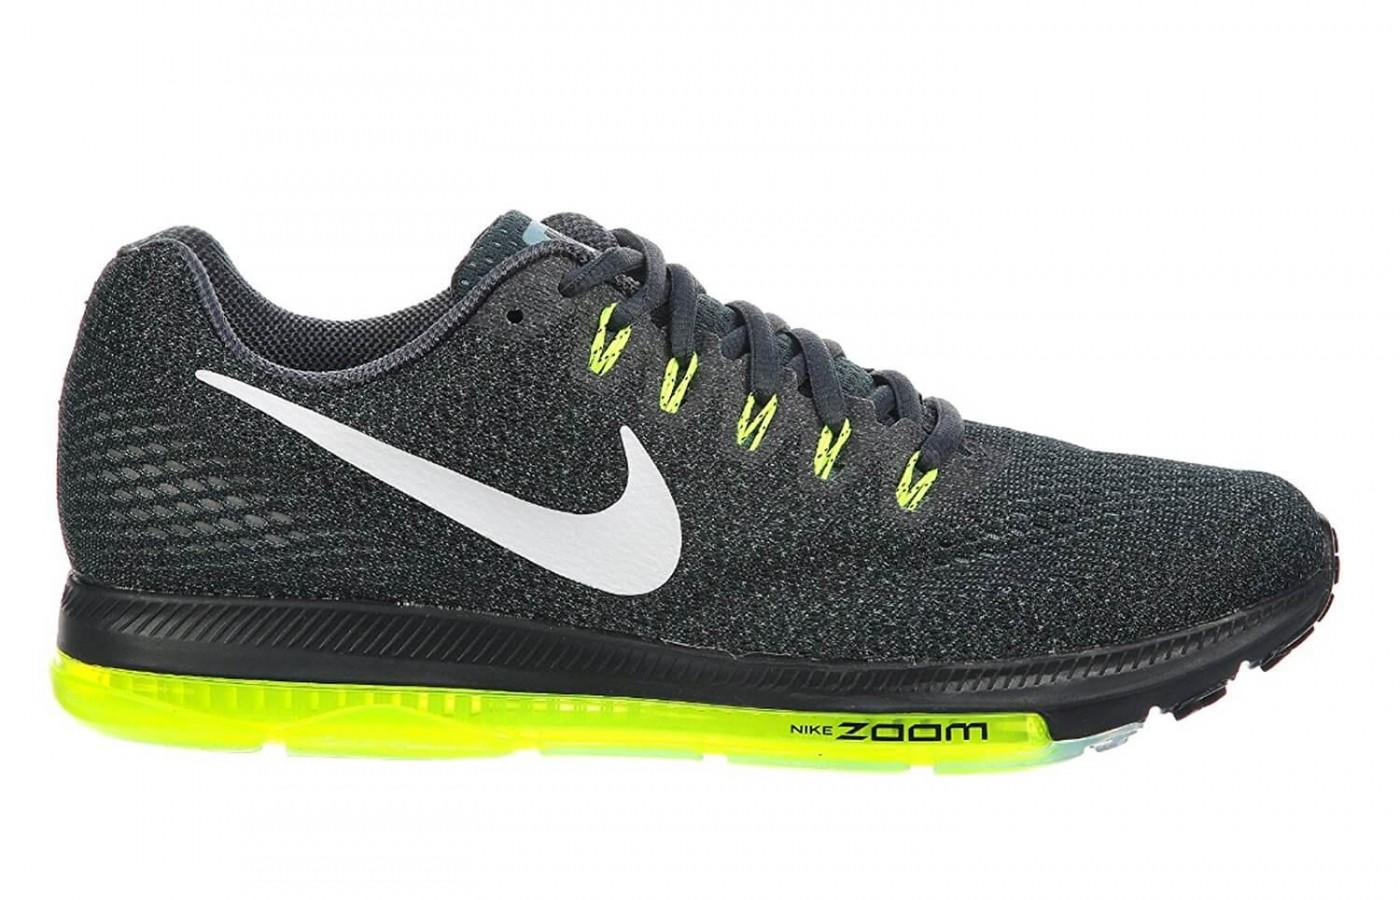 023bba9929b Nike Zoom All Out Low. Nike combines style and structure for a great  overall shoe.